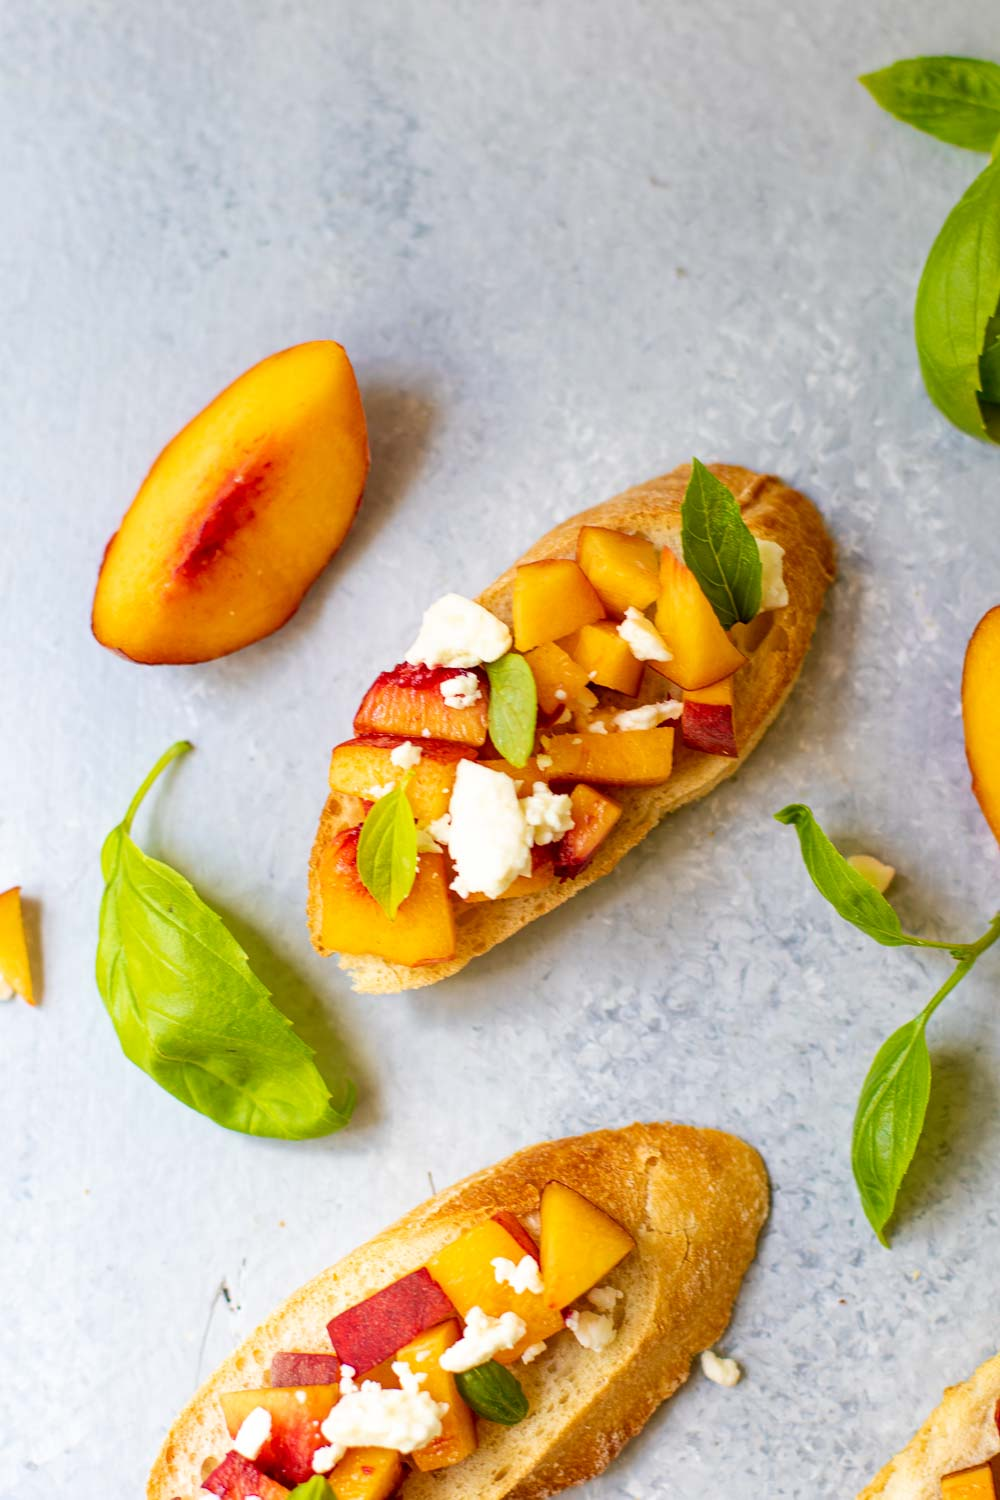 Peach toasts on a light background with fresh basil leaves scattered